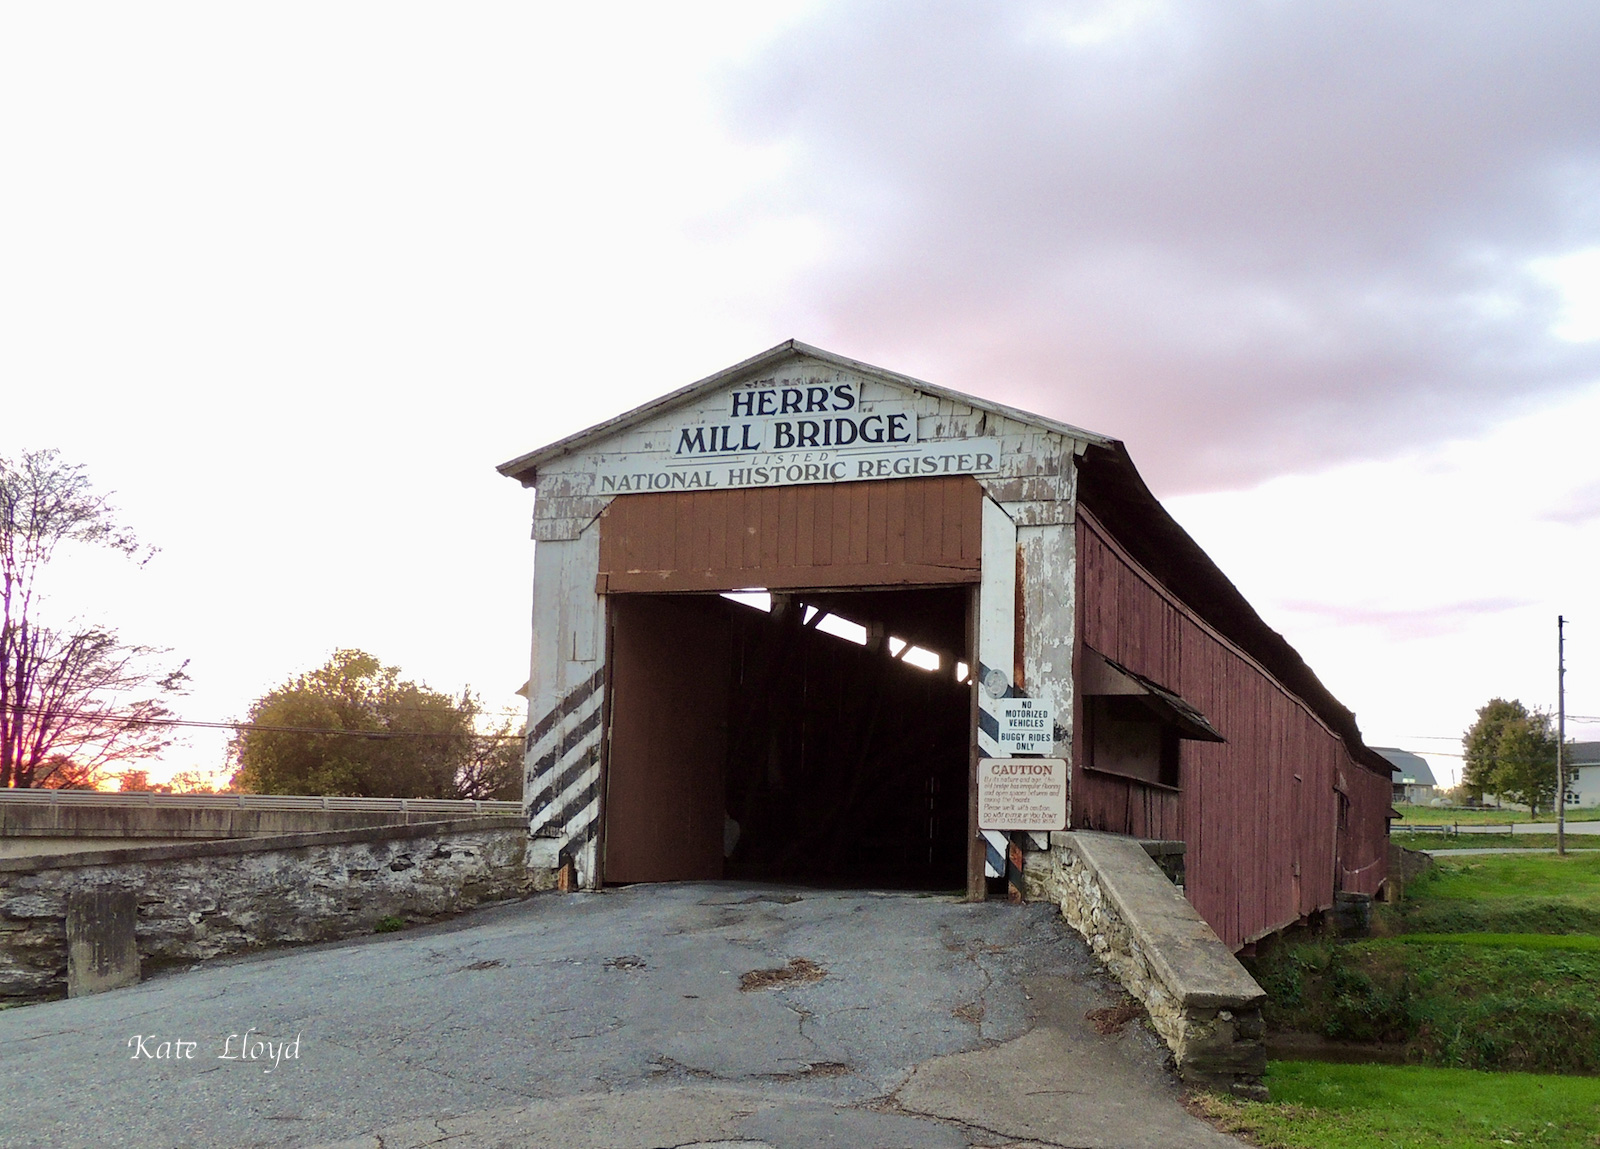 I love the covered bridges of Lancaster County!